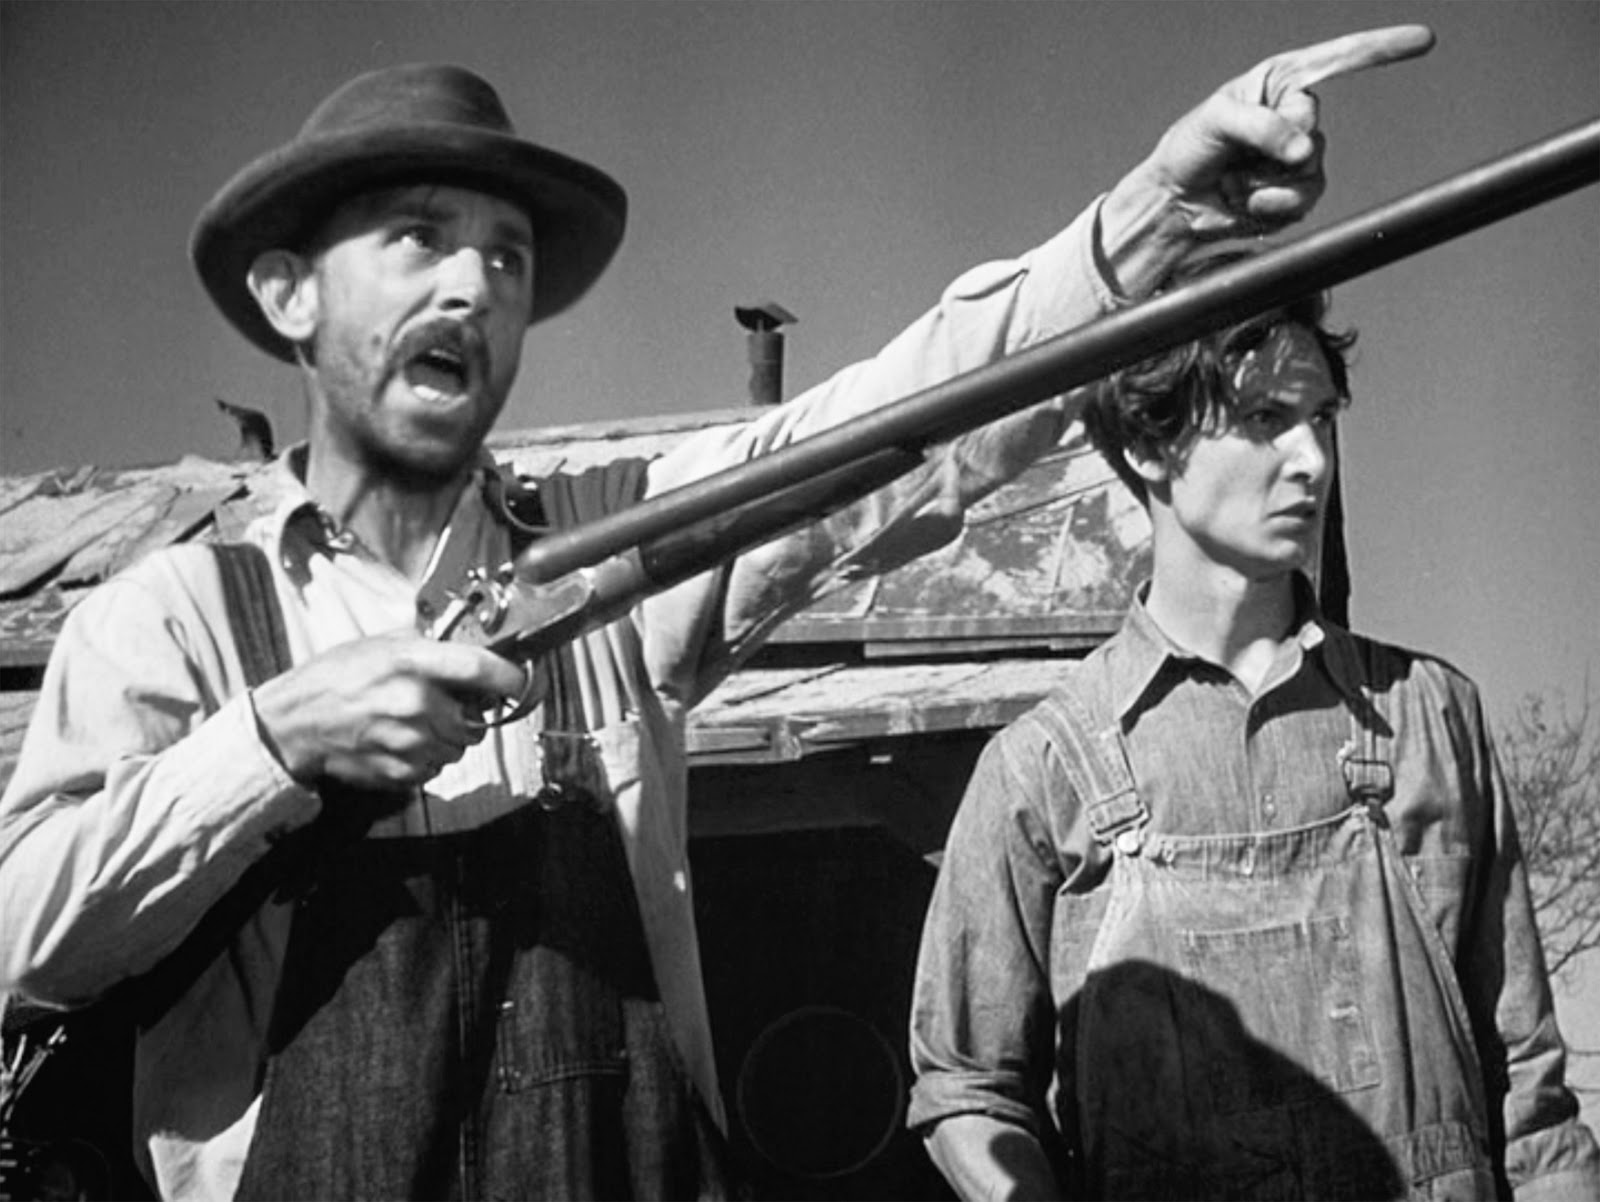 Appealing grapes of wrath essay evaluate classic movie theme